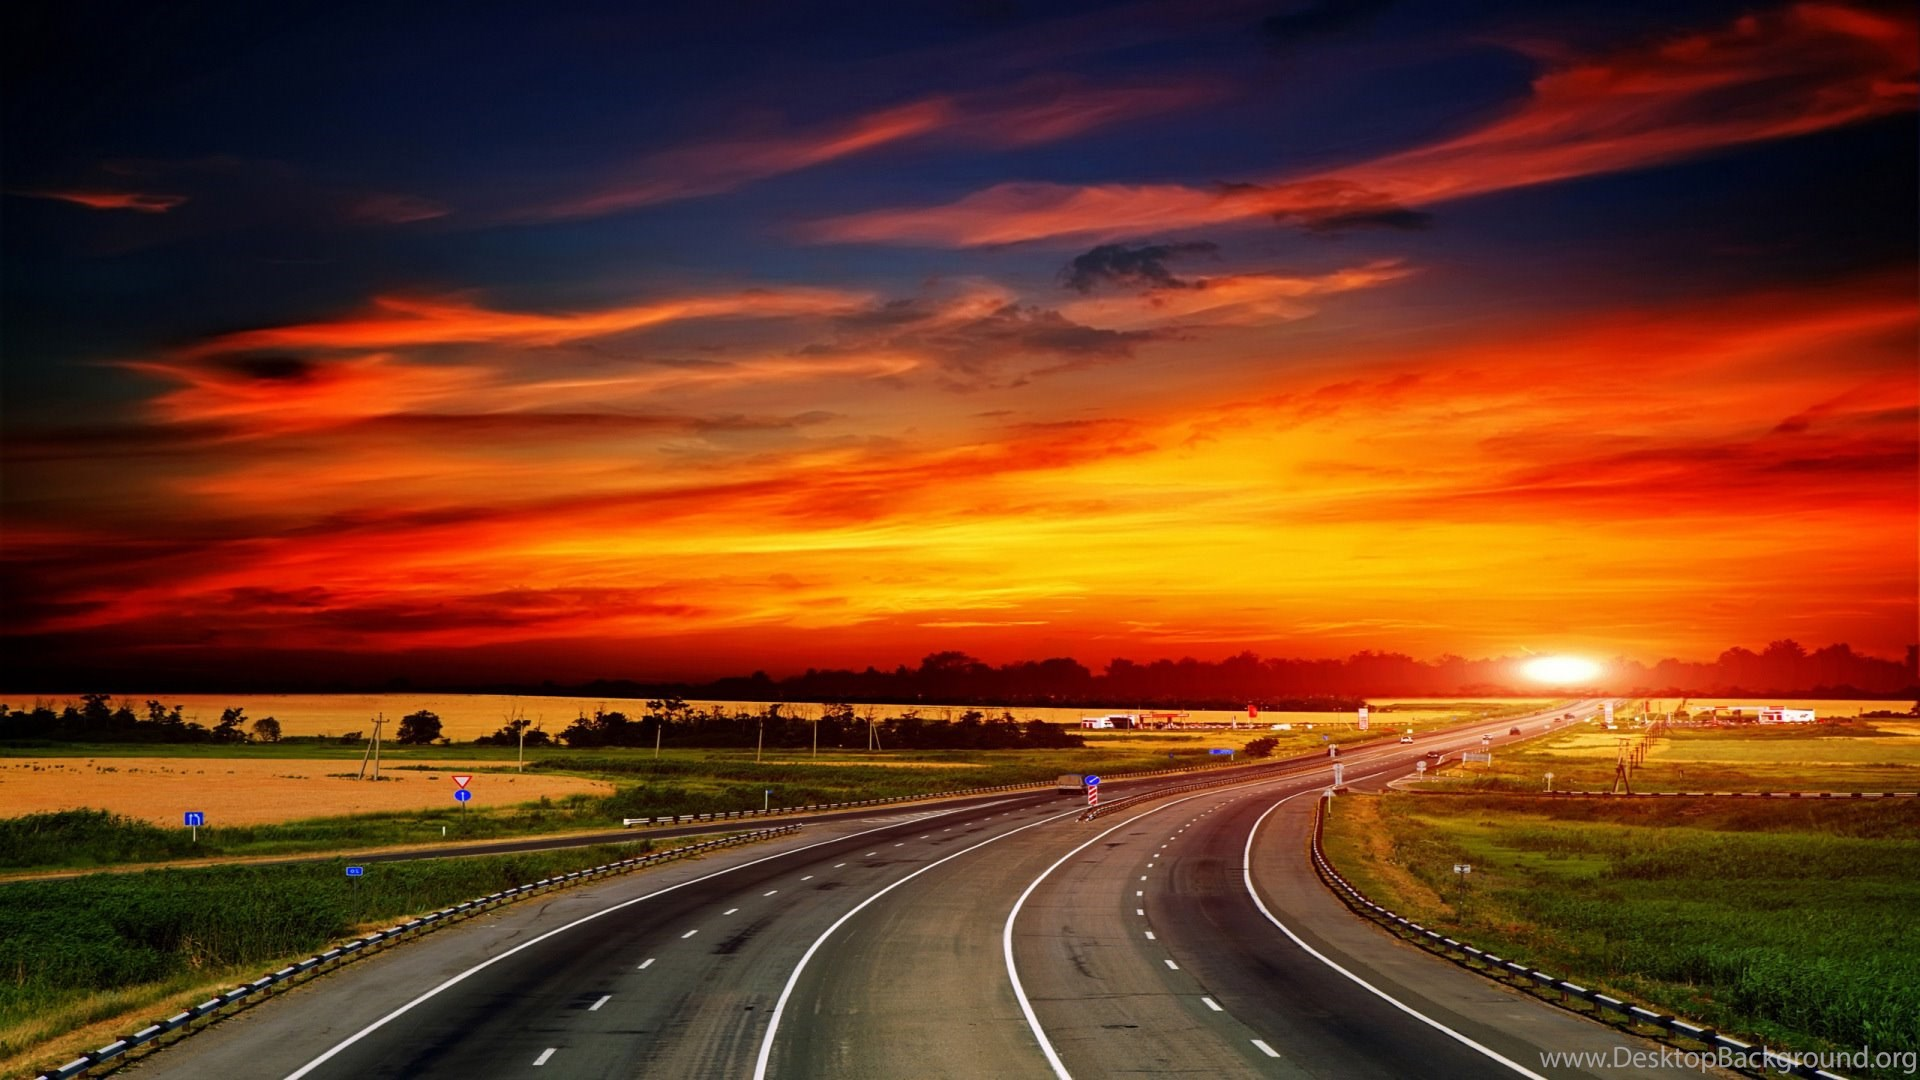 Sunset Highway Road 1920x1080 HD Wallpapers And FREE Stock Photo